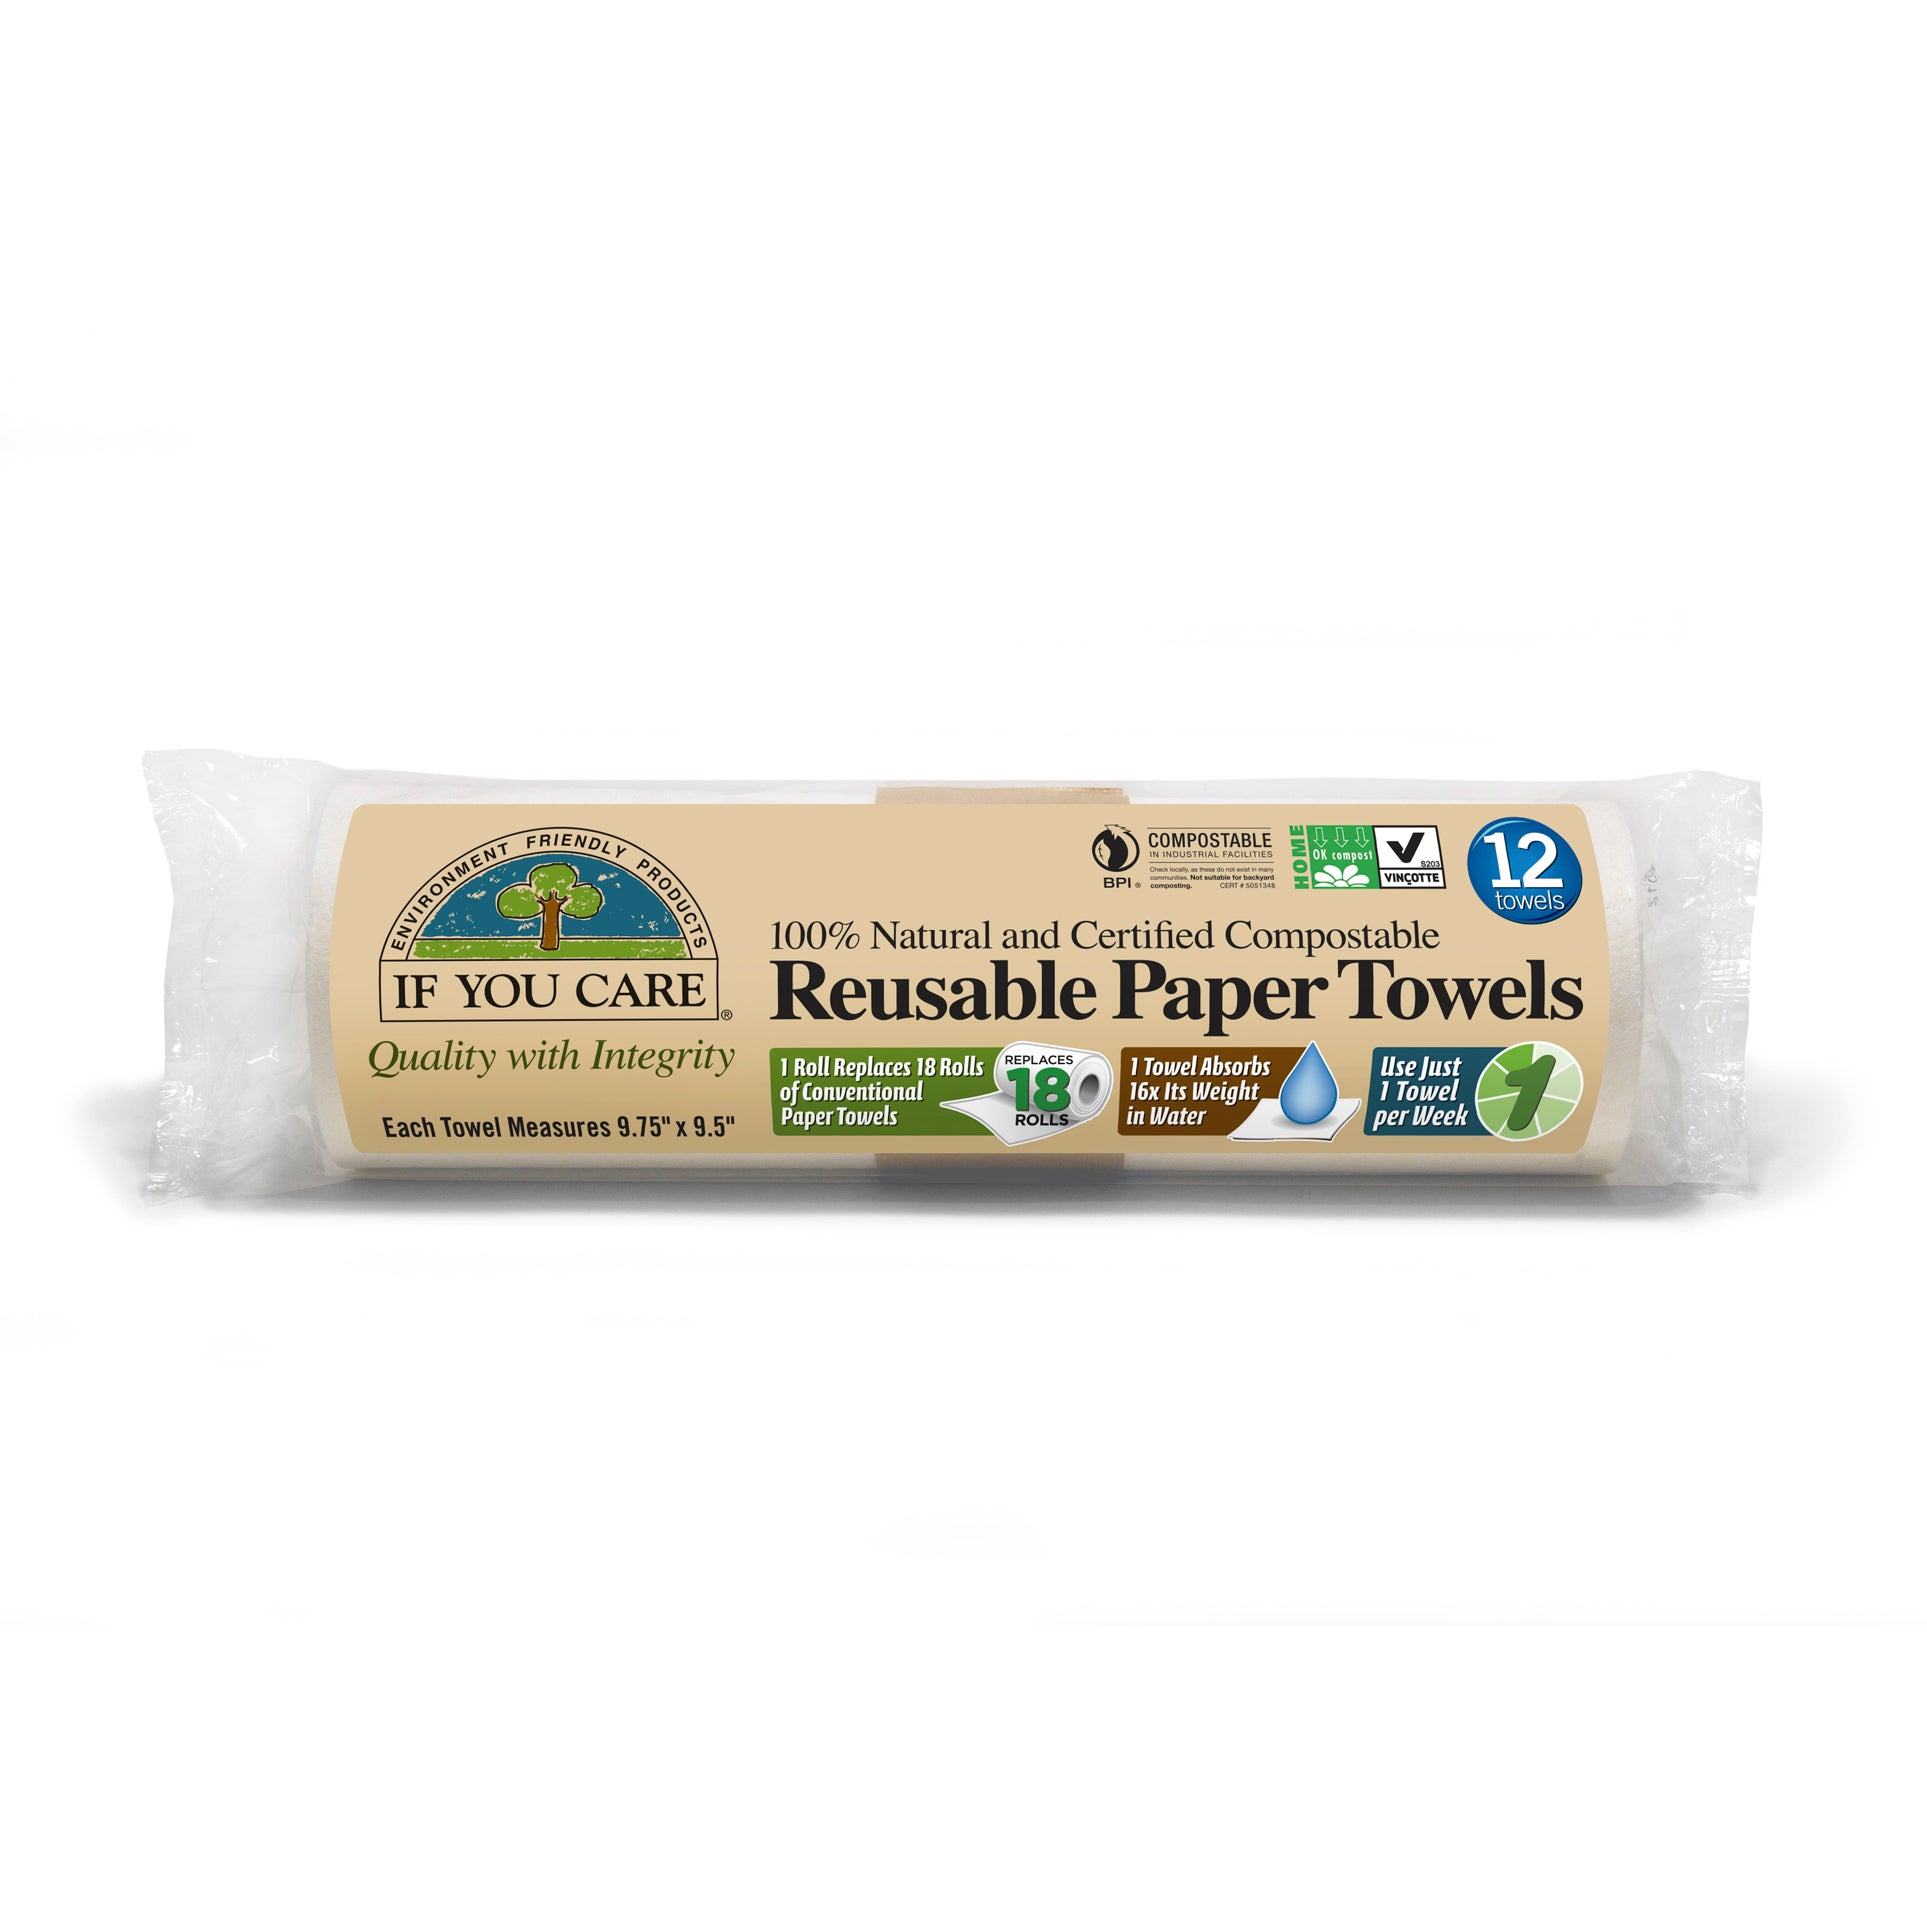 Reusable Paper Towels - 12 x 12 towels